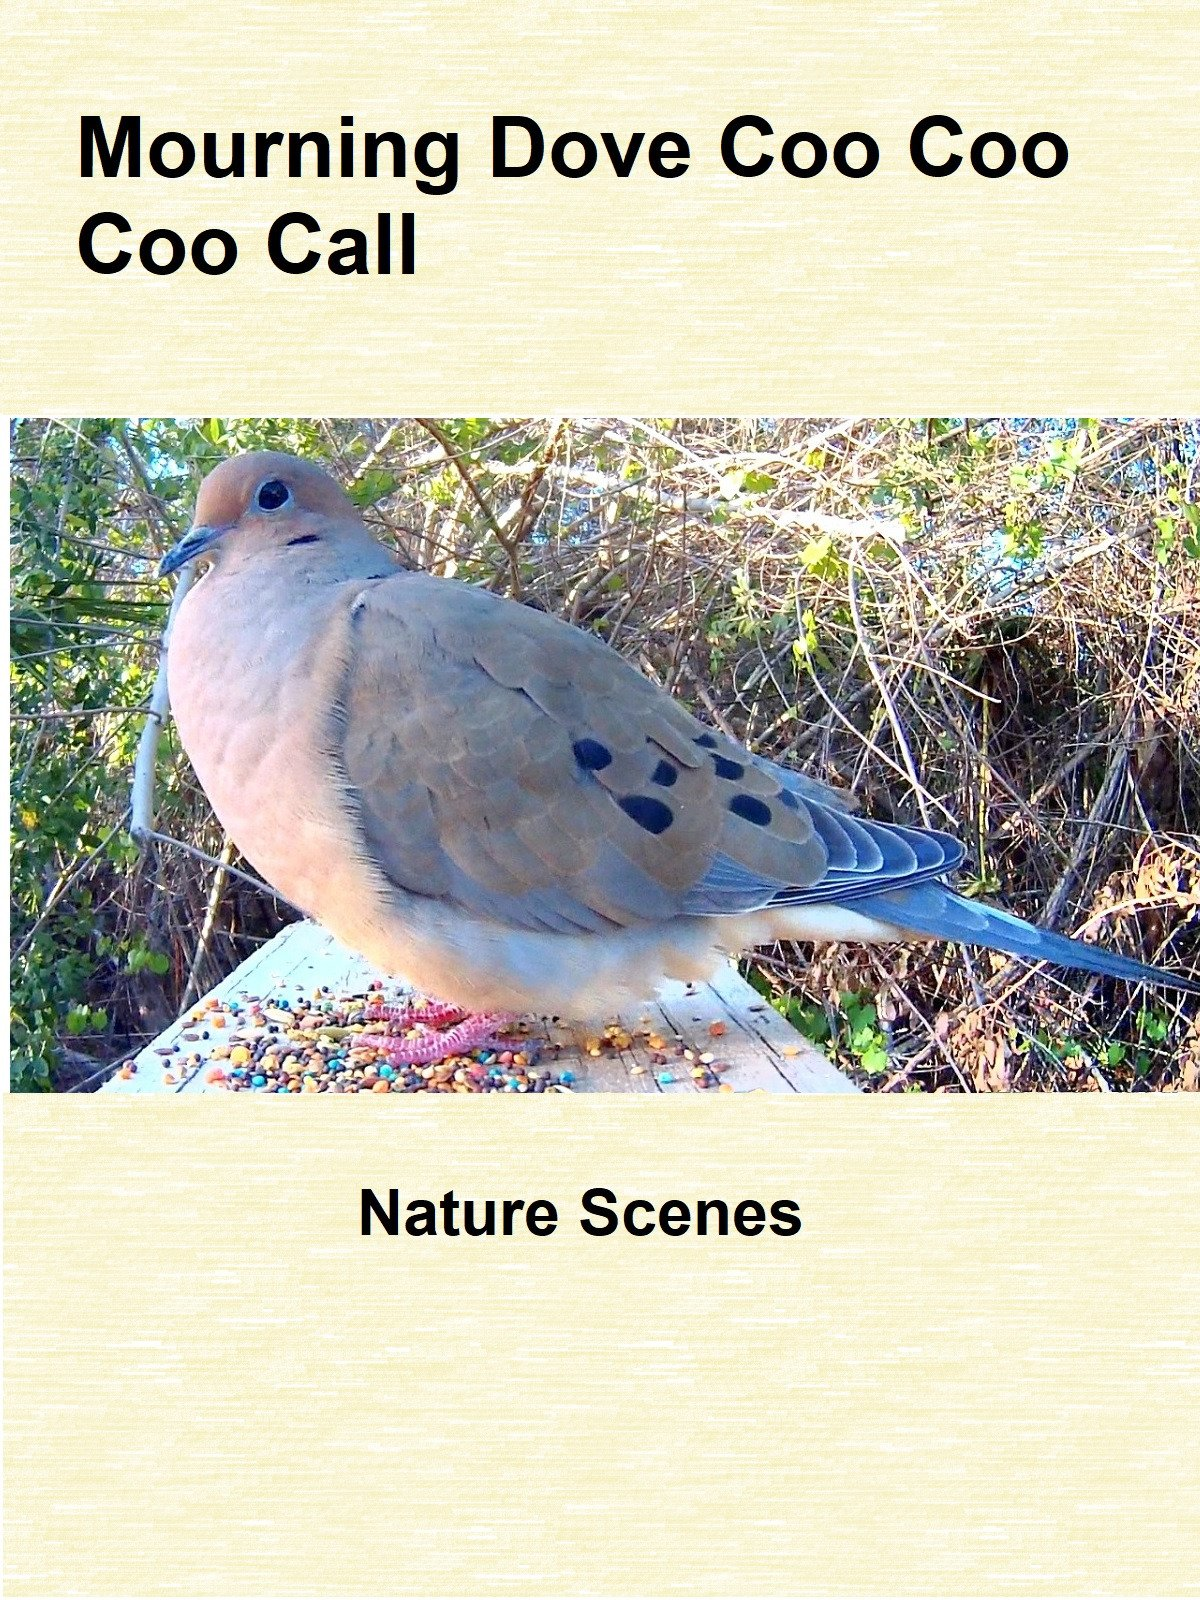 Mourning Dove Coo Coo Coo Call